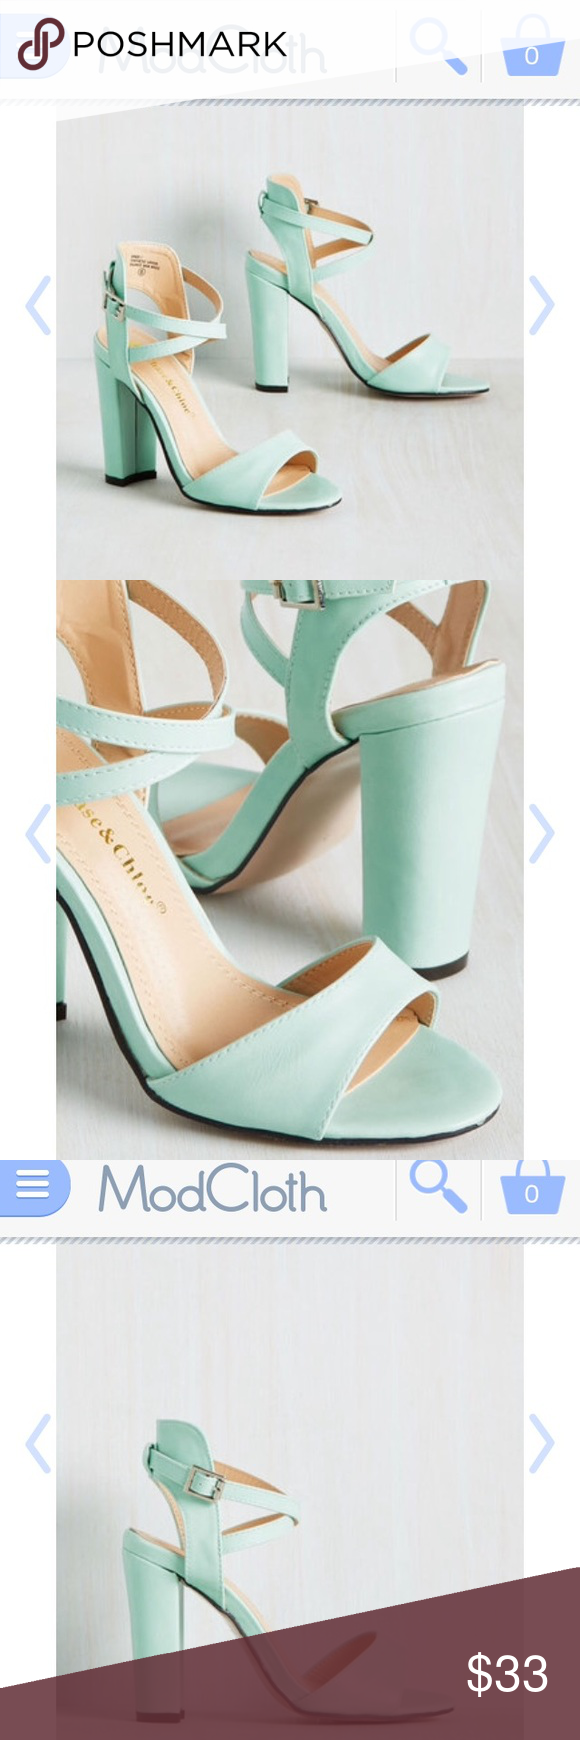 Mint heels Sold at modcloth.com called flourishing courage heel! Originally 39.99 New With Box! They were only wore for a few hours I realized they were to big and wanted a different size. These are 8.5  anyone who is an 8.5 can ware them they might be lose on you, I think a 9 could ware them as well. There is a small nick on the bottom of the shoe this is the only flaw but since it's on the bottom you can't and no else can see it :)  Great fun heels in great condition! ModCloth Shoes Heels